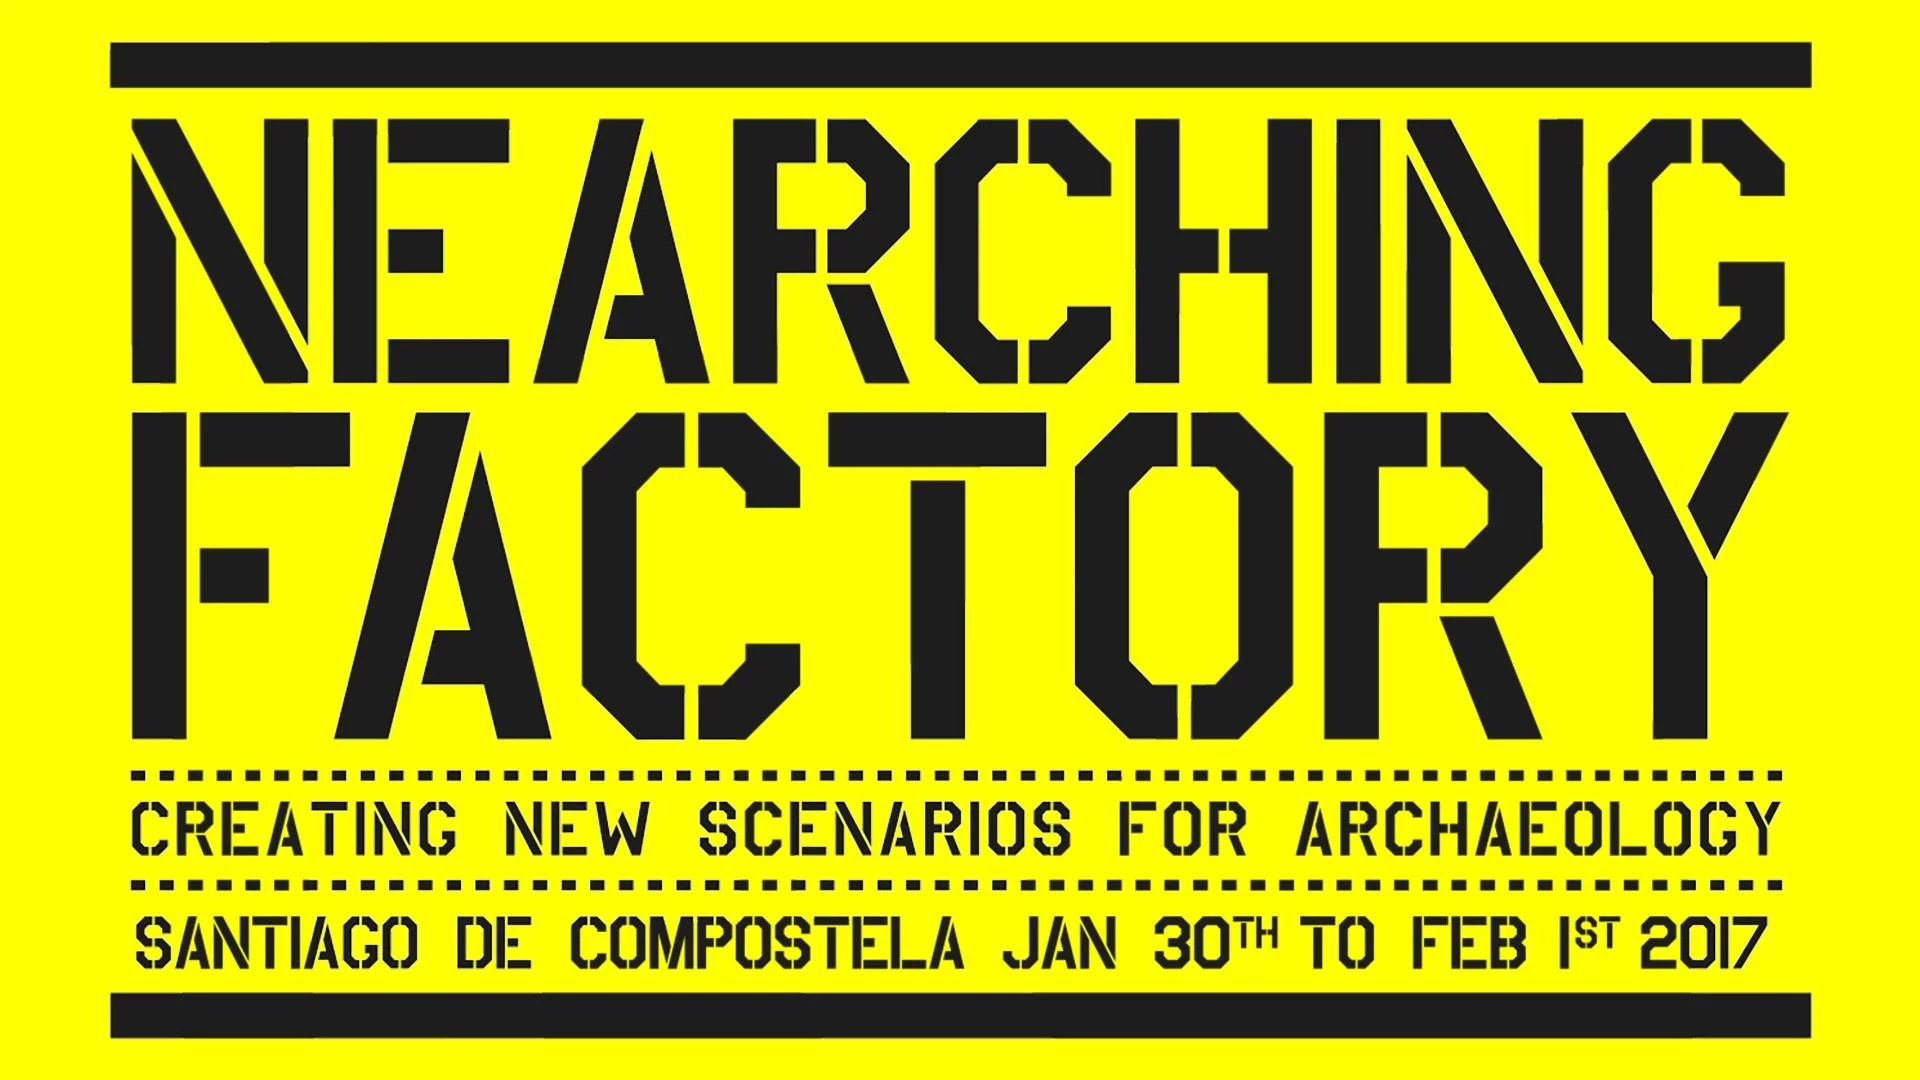 nearching factory